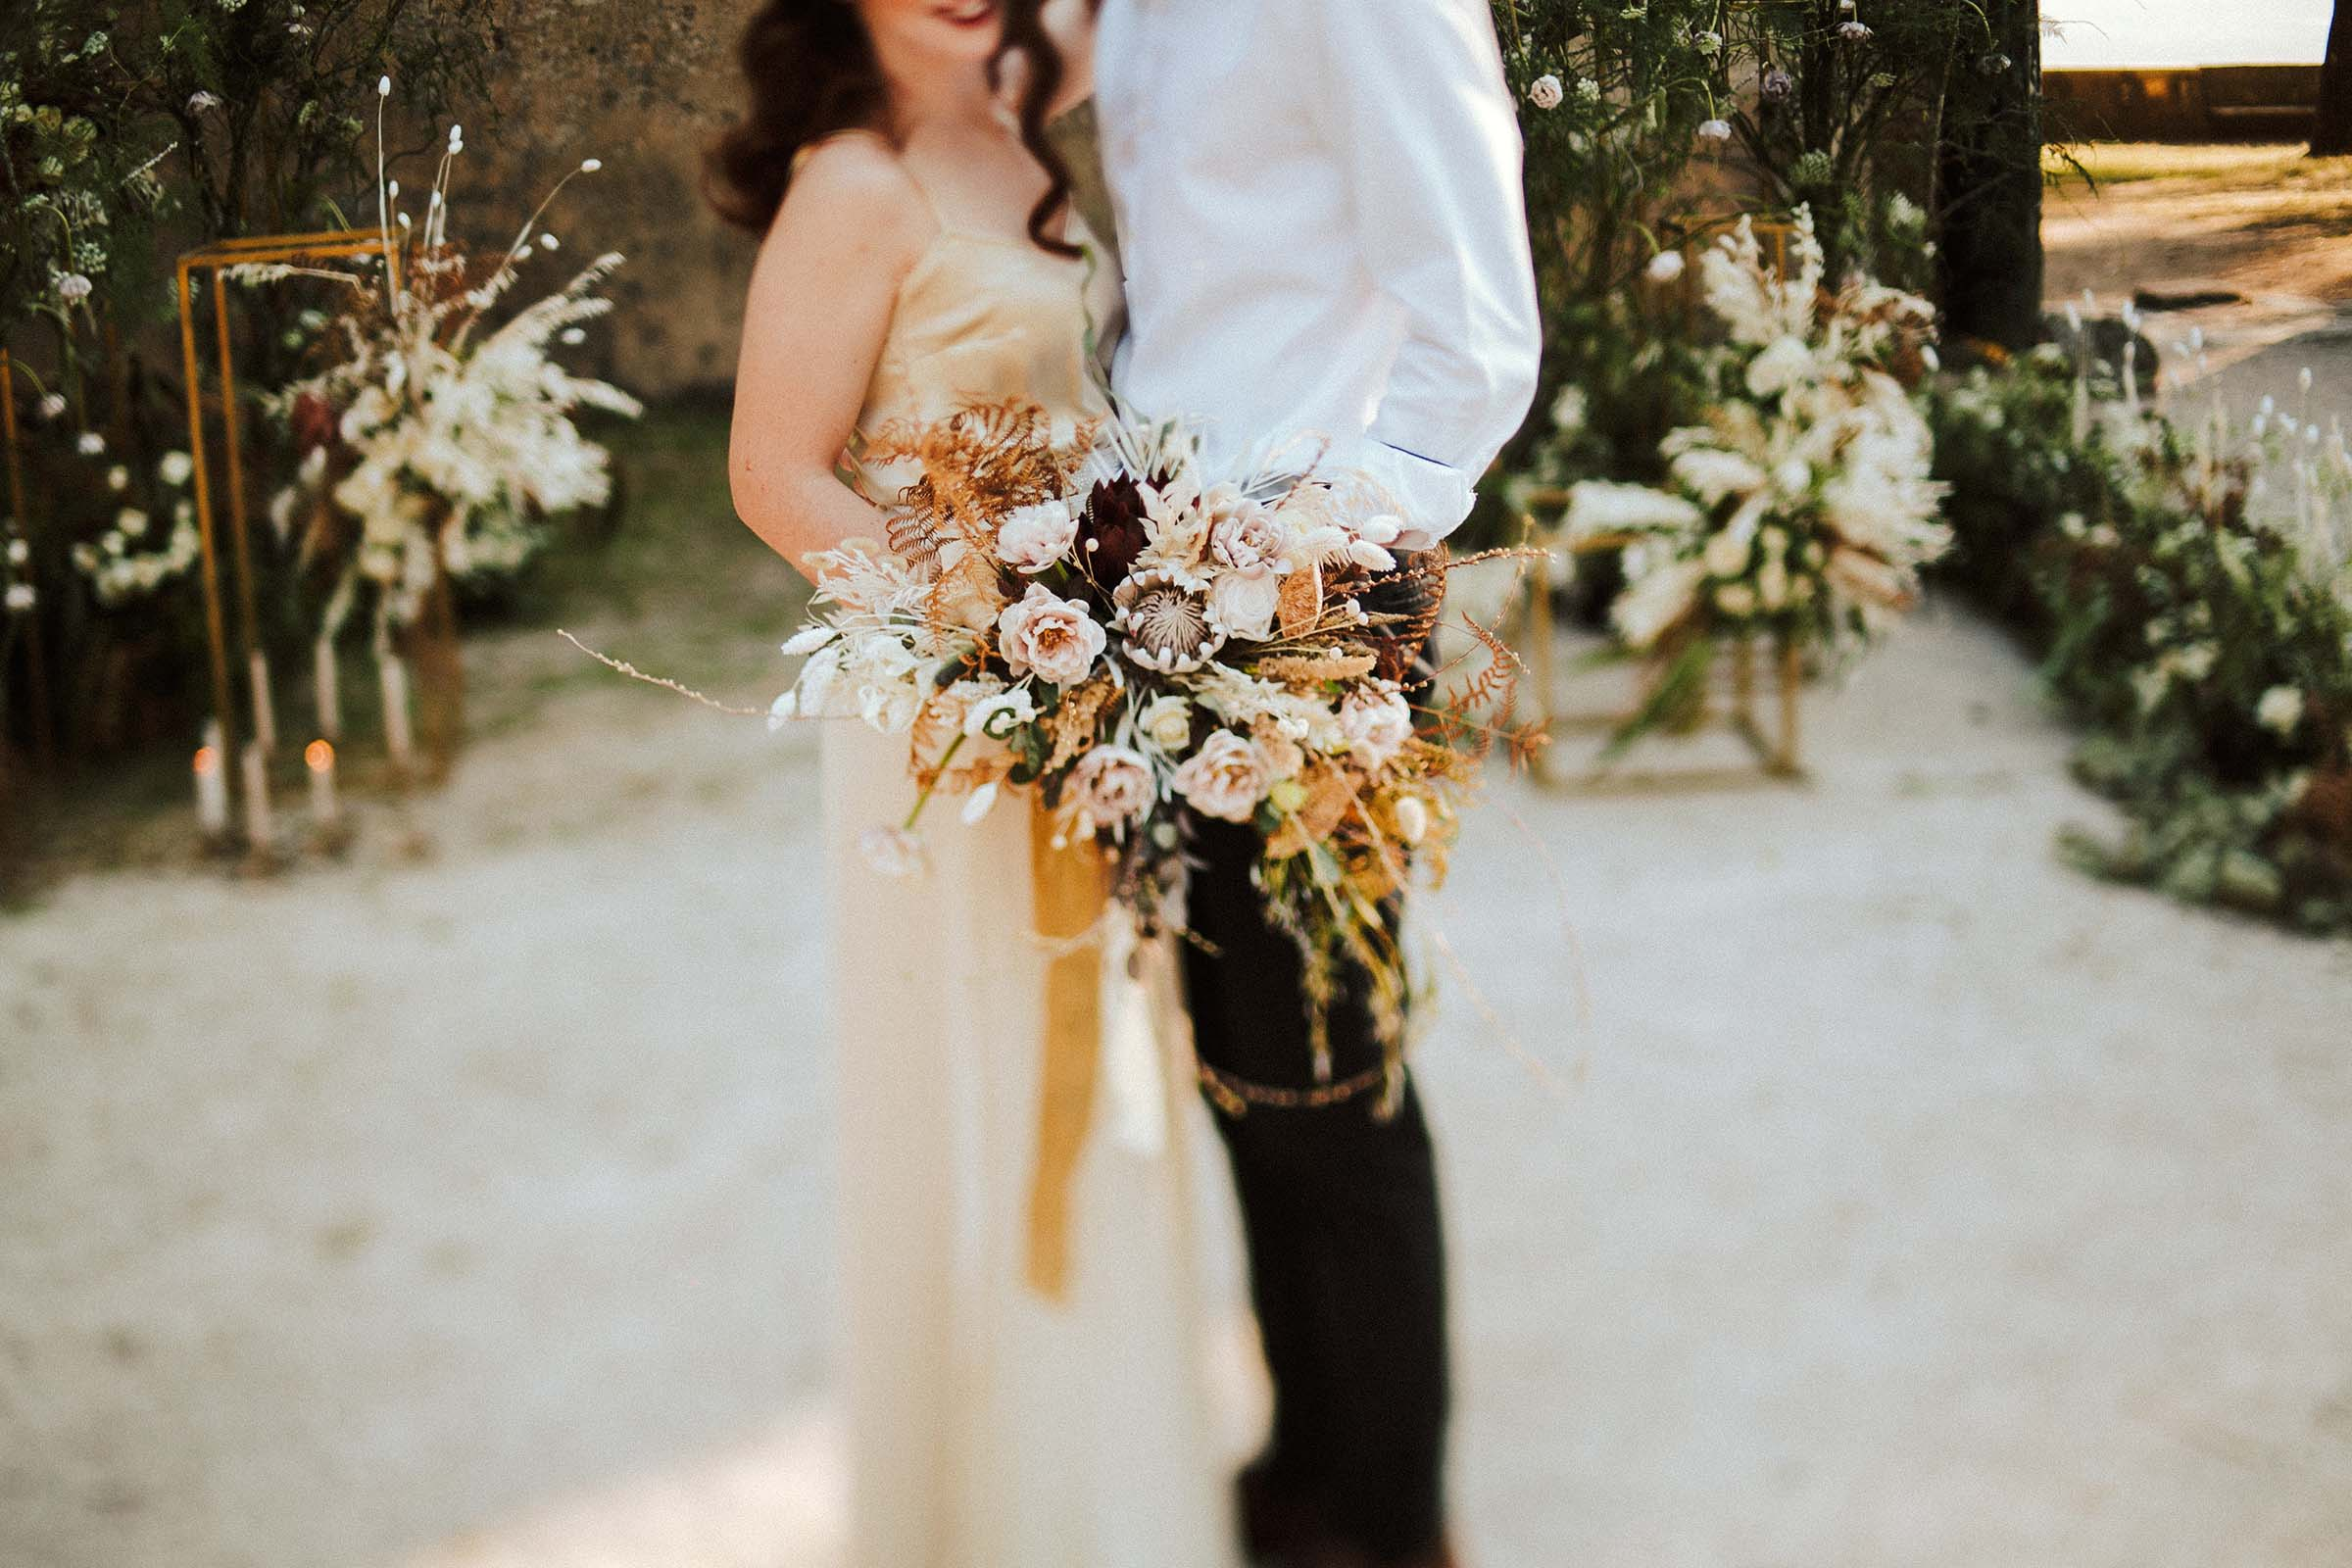 bouquet details with couple standing close together